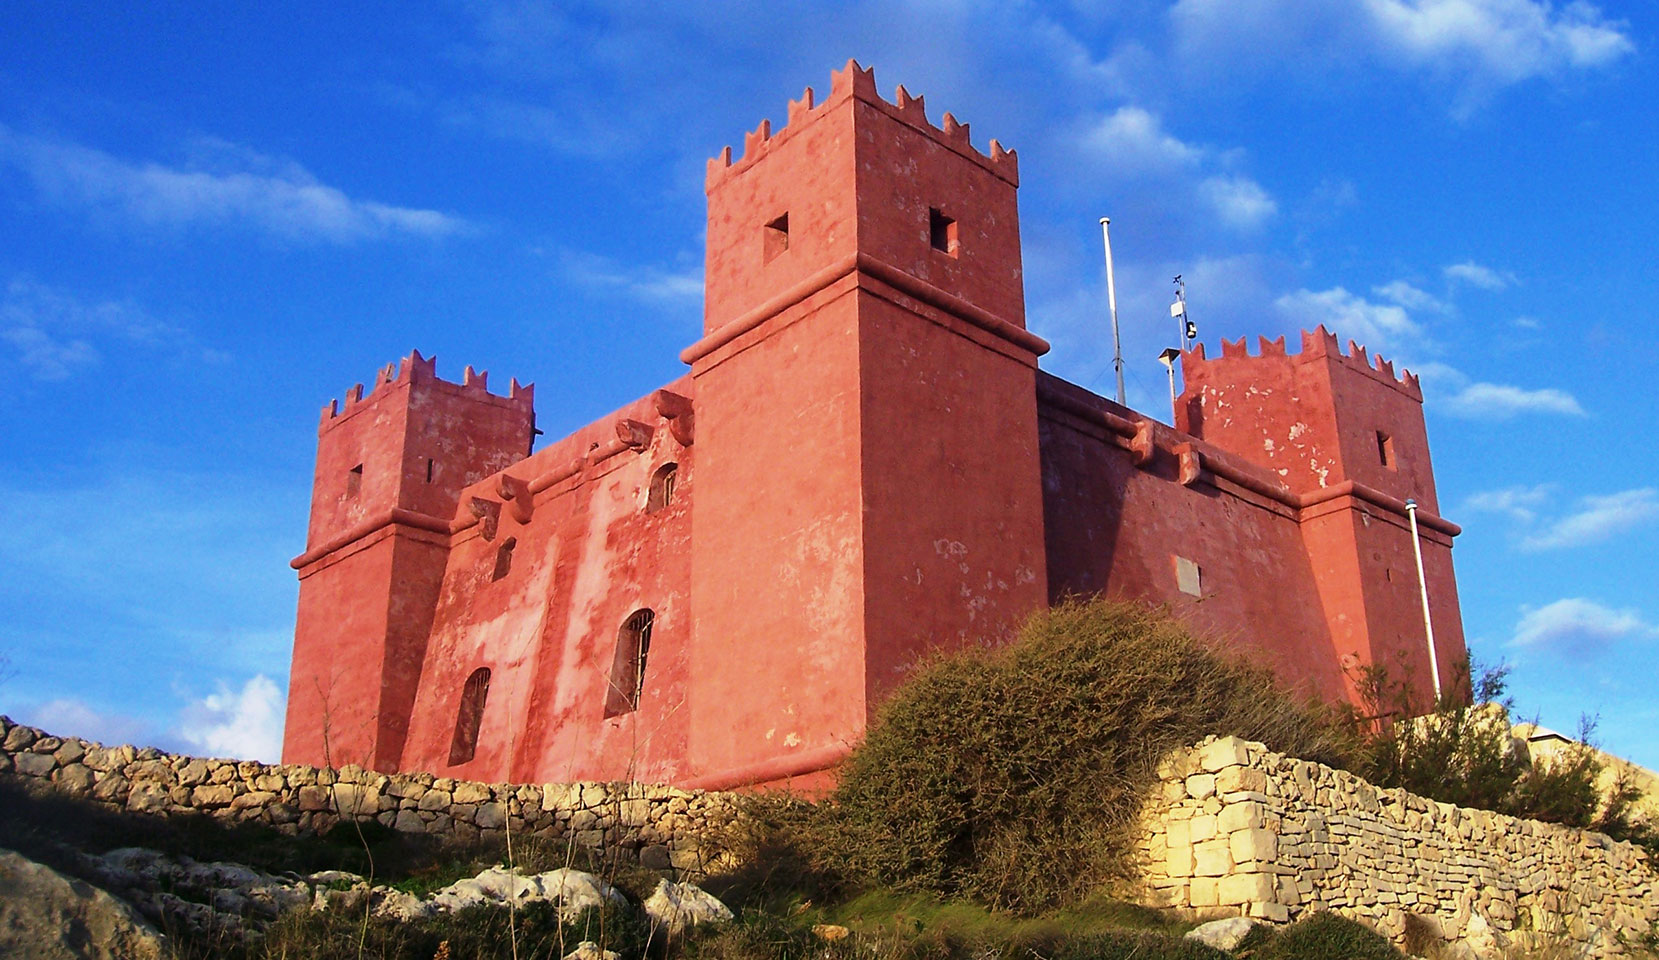 St. Agatha's Tower (The Red Tower)